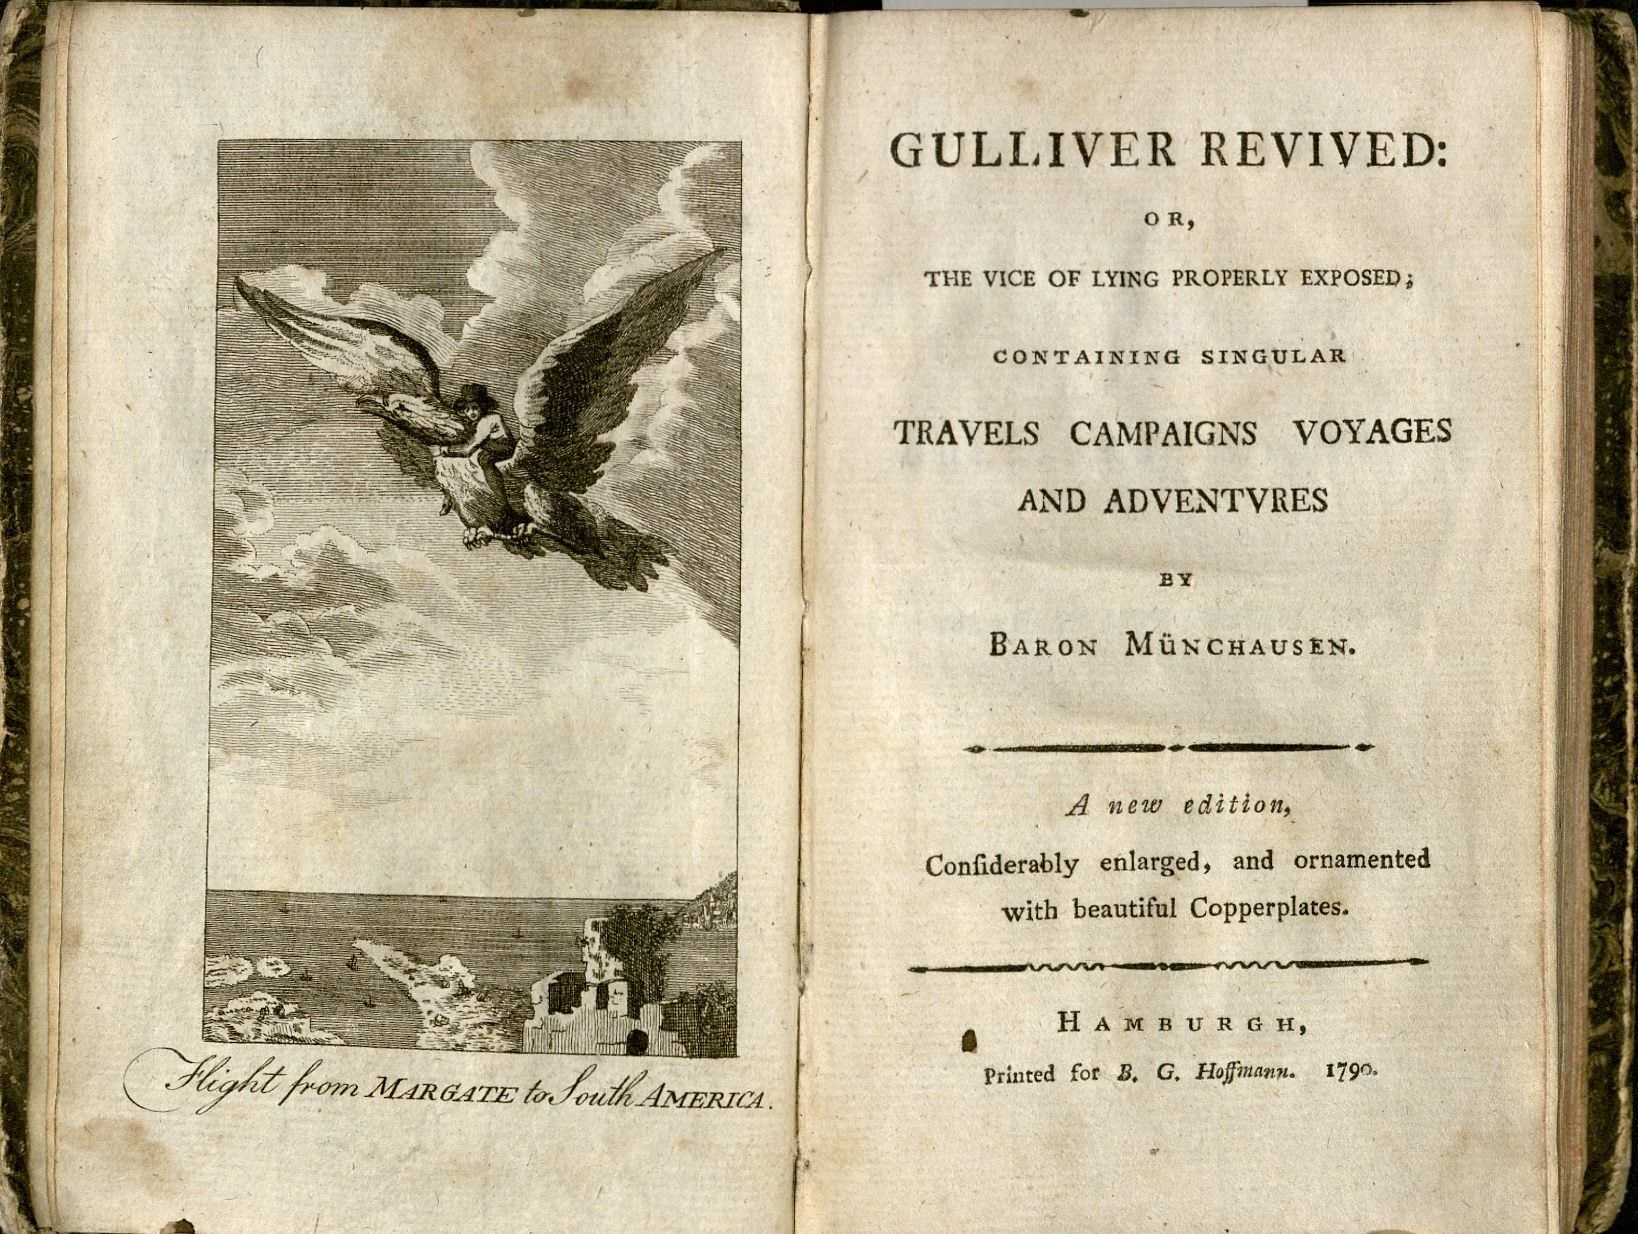 Gulliver revived, or, the vice of lying properly exposed. Hamburg, 1790. EC75.R1847M.1789